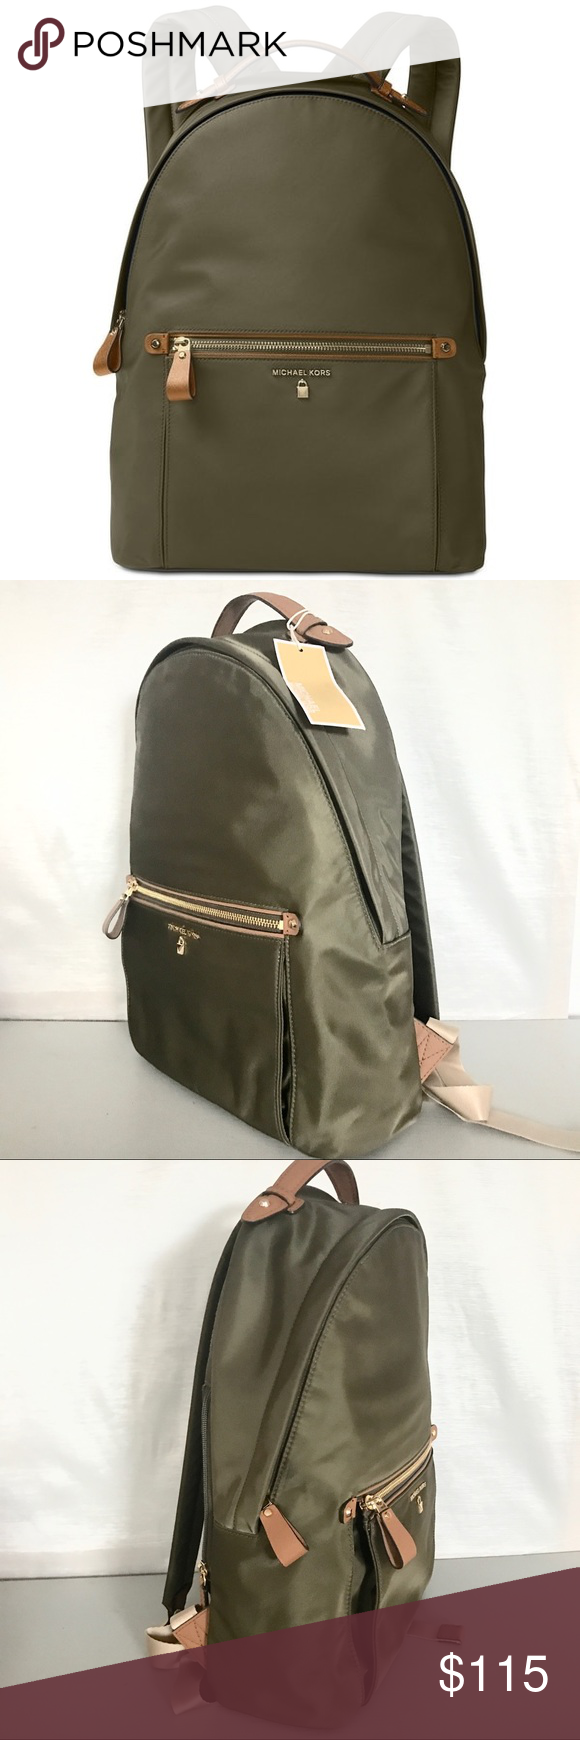 aa3b17d5761b New Authentic MK Kelsey backpack Olive Padded straps provide all-day carry  for a durable MICHAEL Michael Kors backpack finished with a flash of  hardware and ...